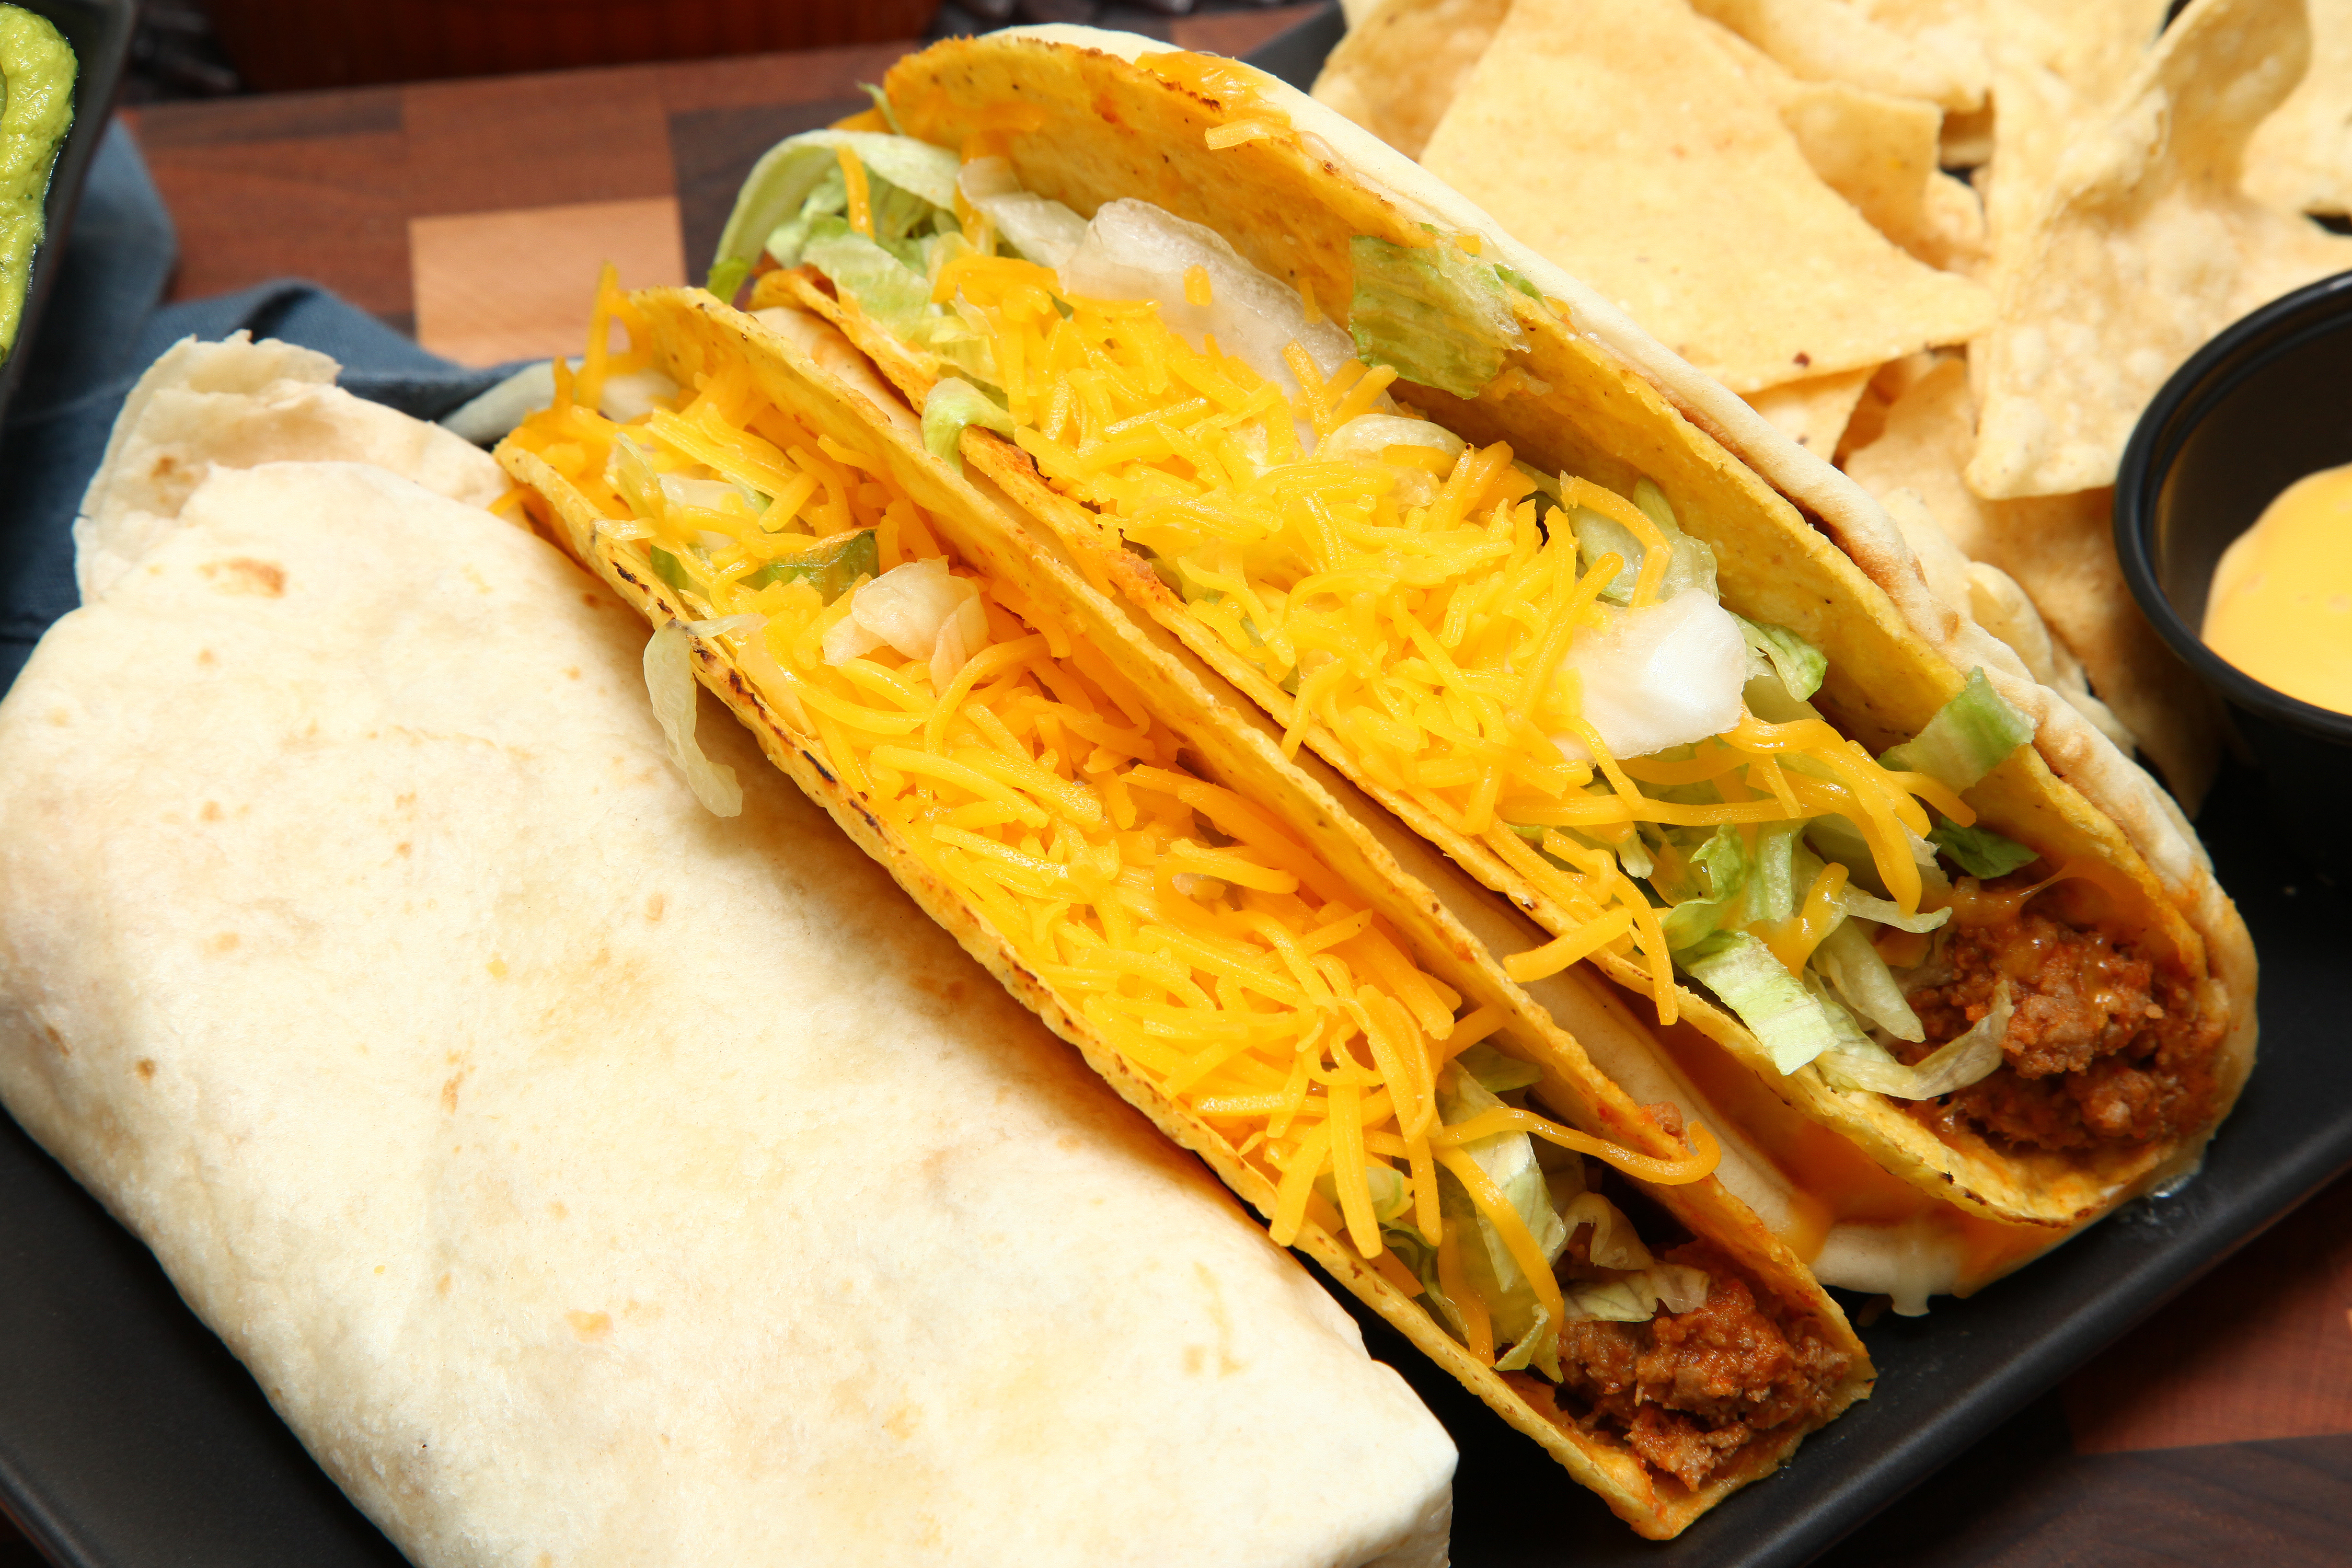 A burrito and two tacos covered in shredded cheese